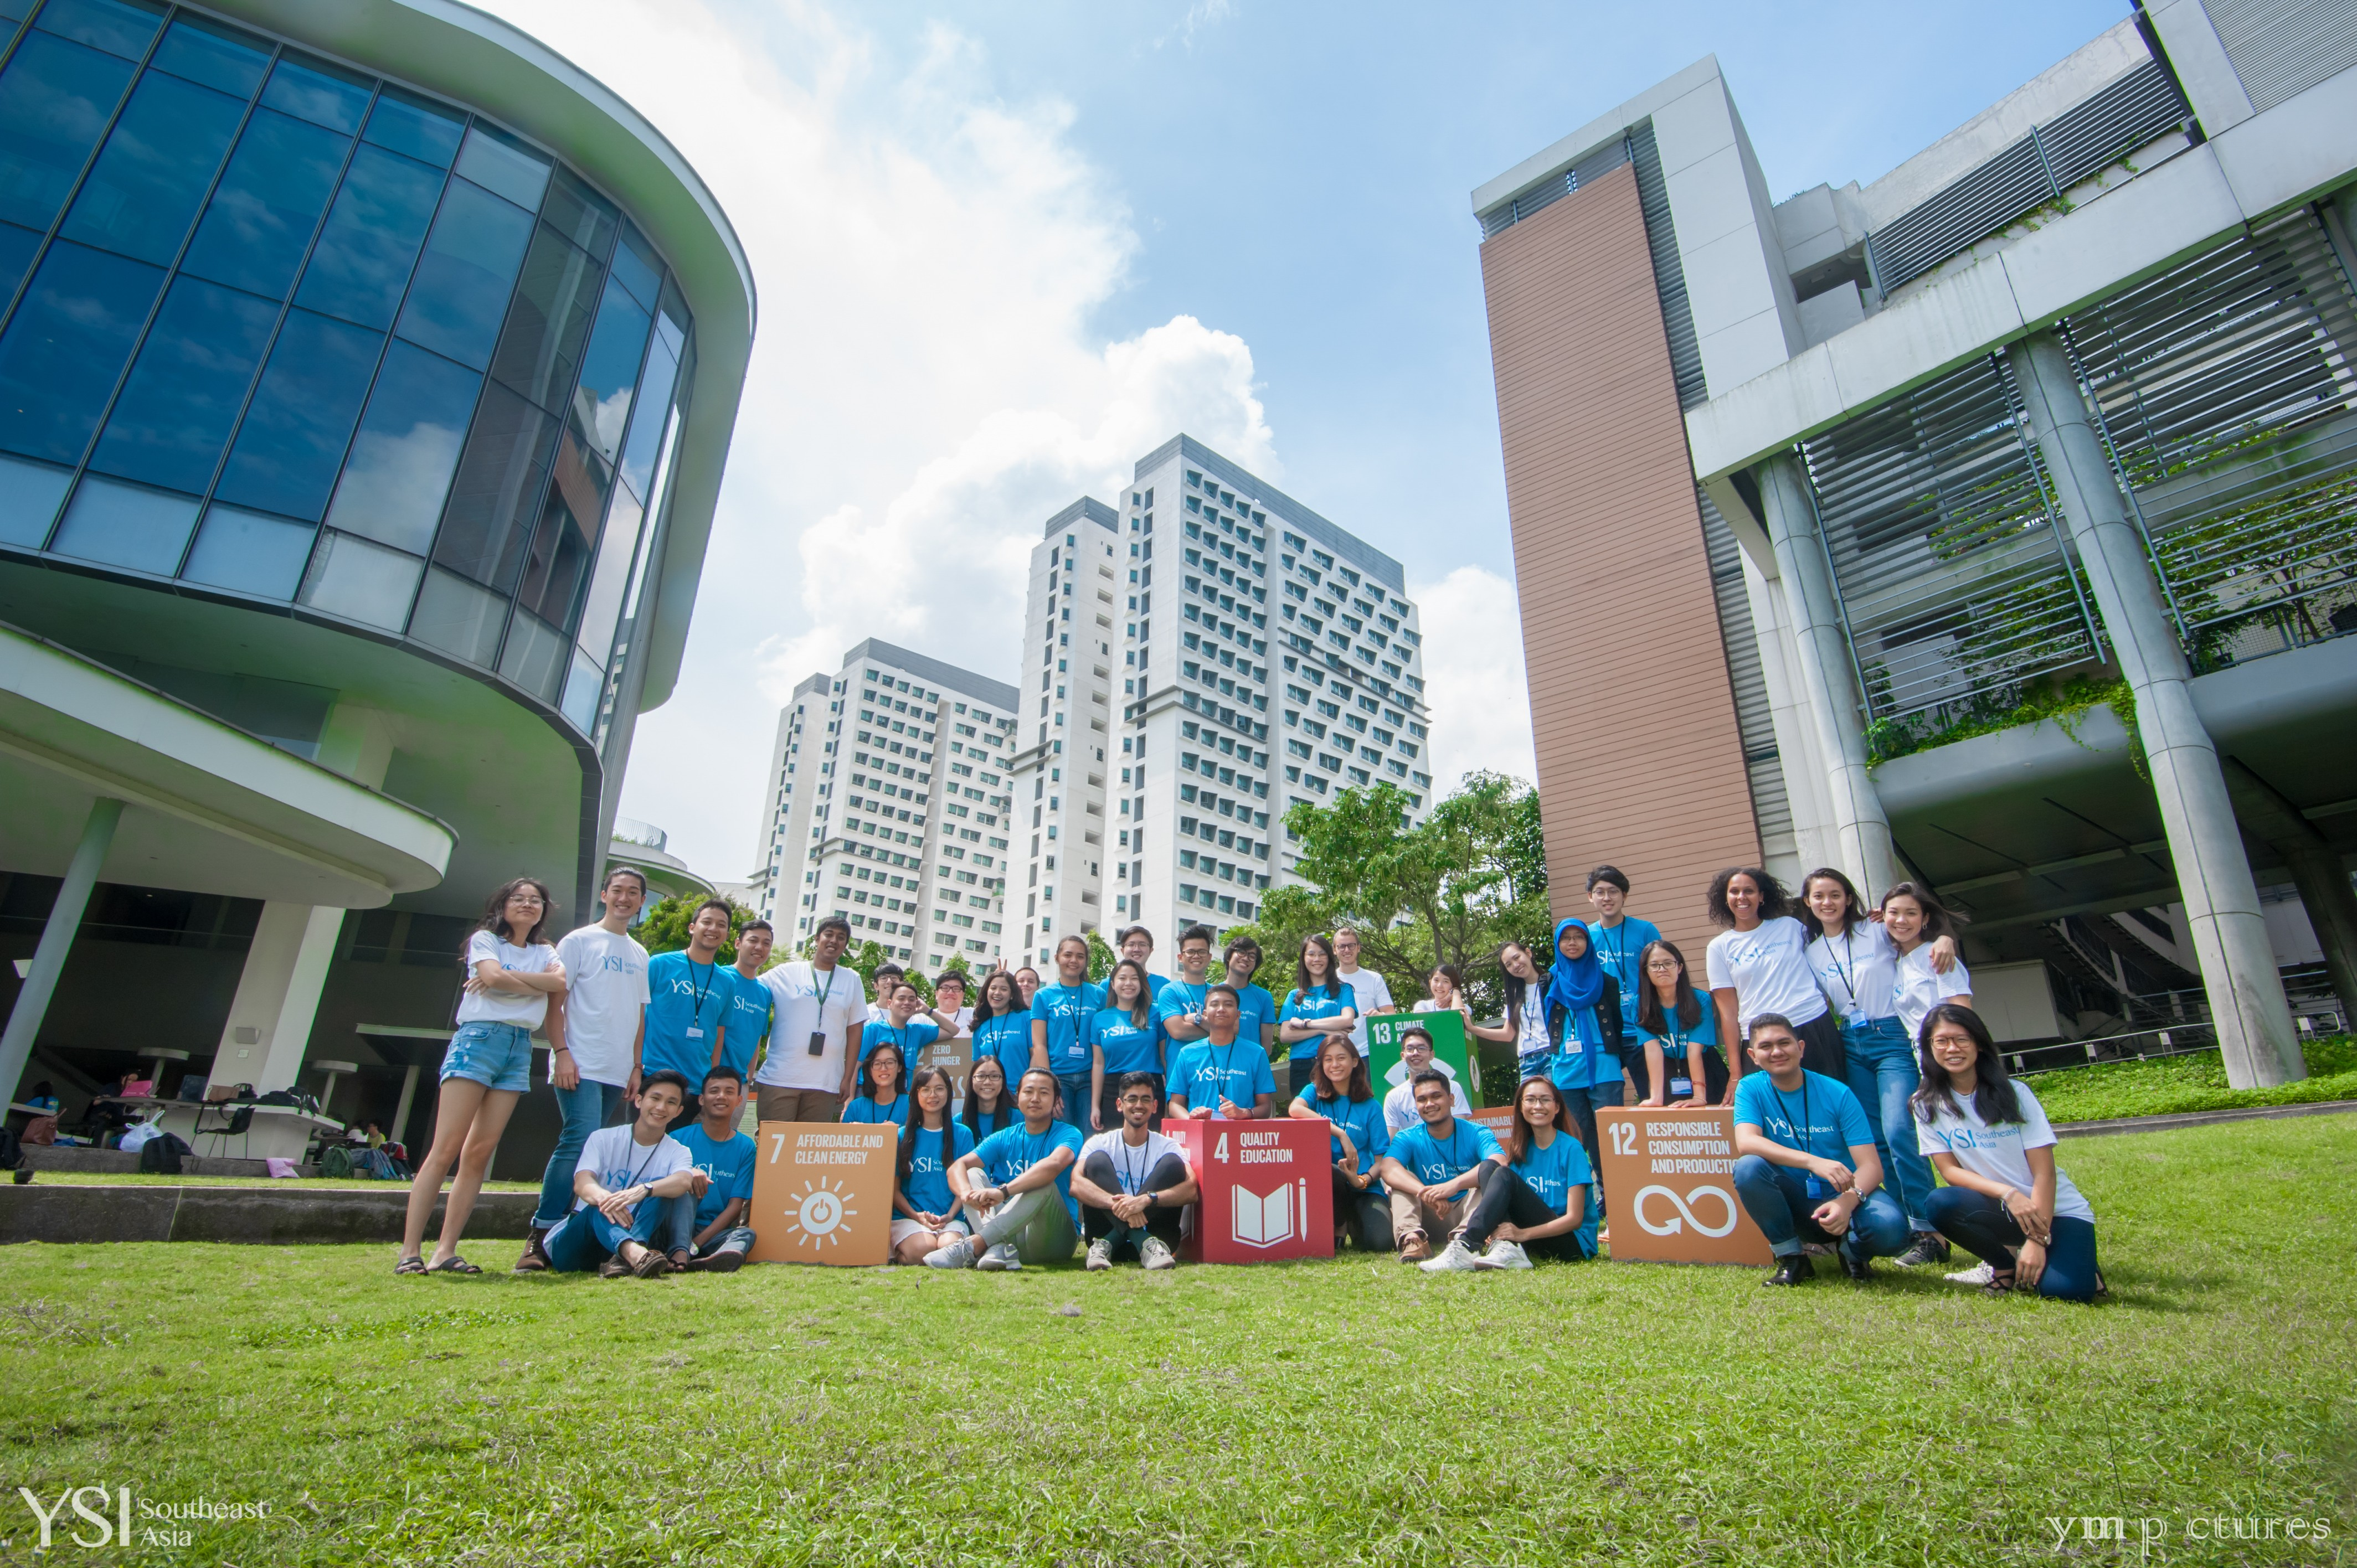 YSI SEA - Young Sustainable Impact Southeast Asia | LinkedIn